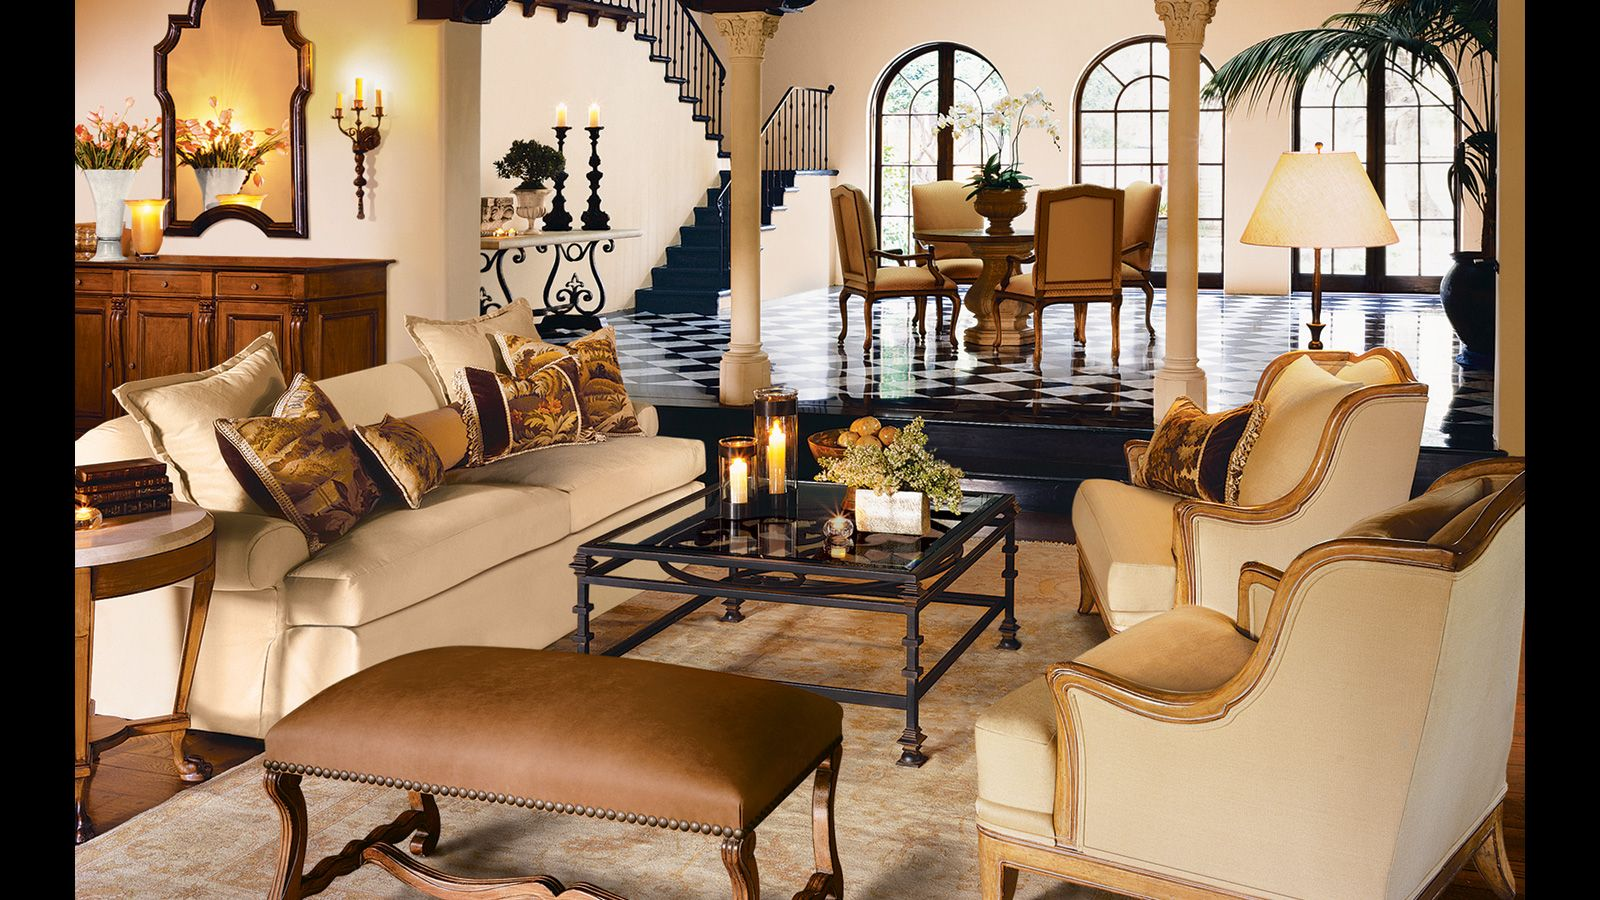 Exceptional Such A Warm Feeling This Living Room Gives